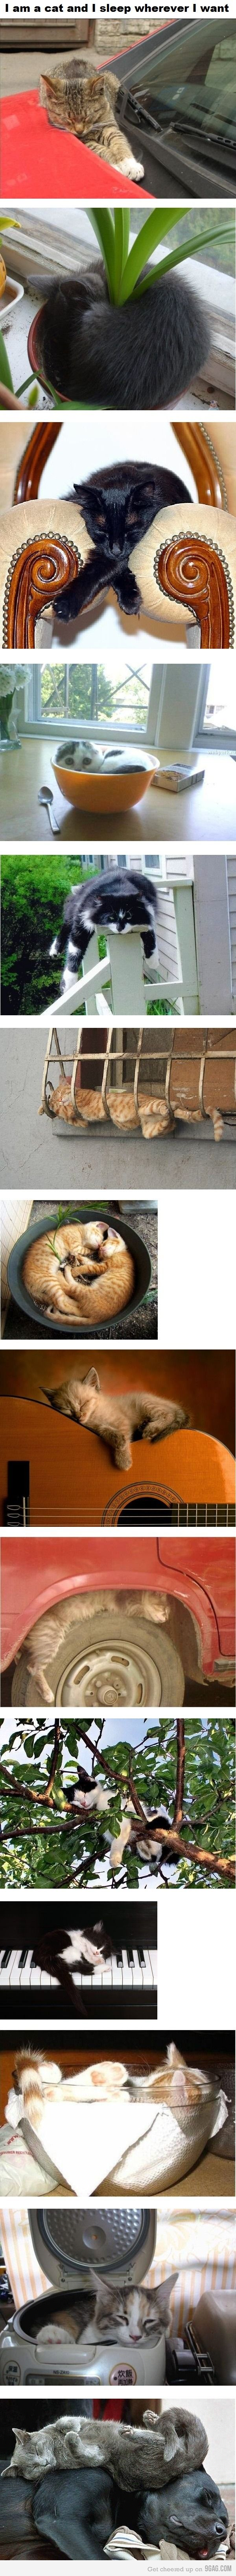 Cats sleep wherever they want to.